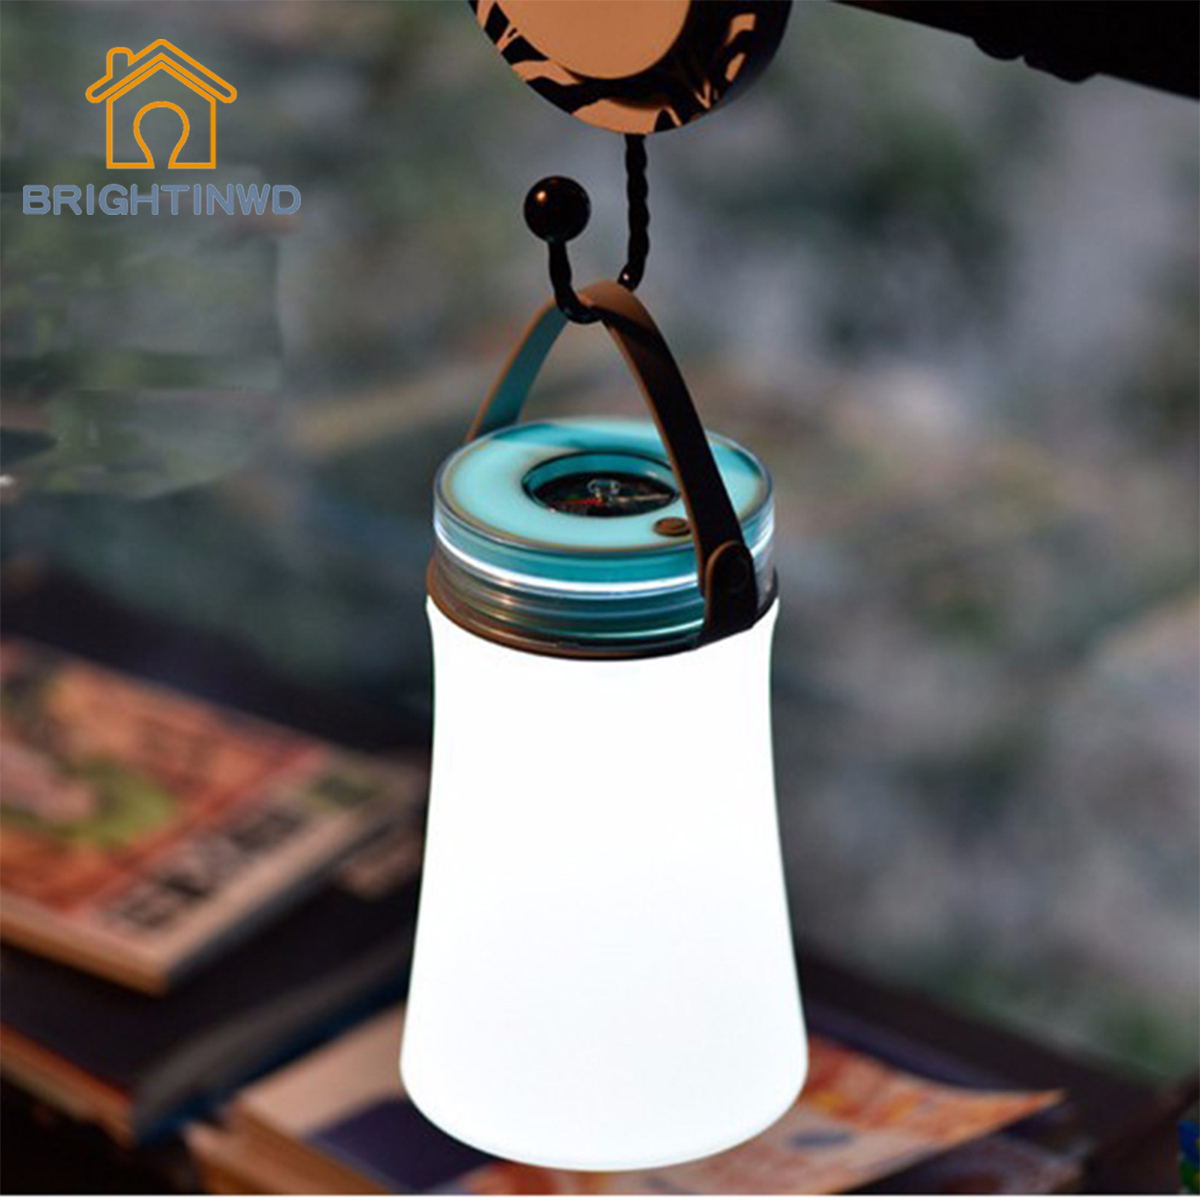 BRIGHTINWD Toys outdoor waterproof camping rechargeable lights portable lights led outdoor lights compass Camping Lantern 7356 15 led compass bivouac camping lantern light lamp travel outdoor exercise equipment with compass